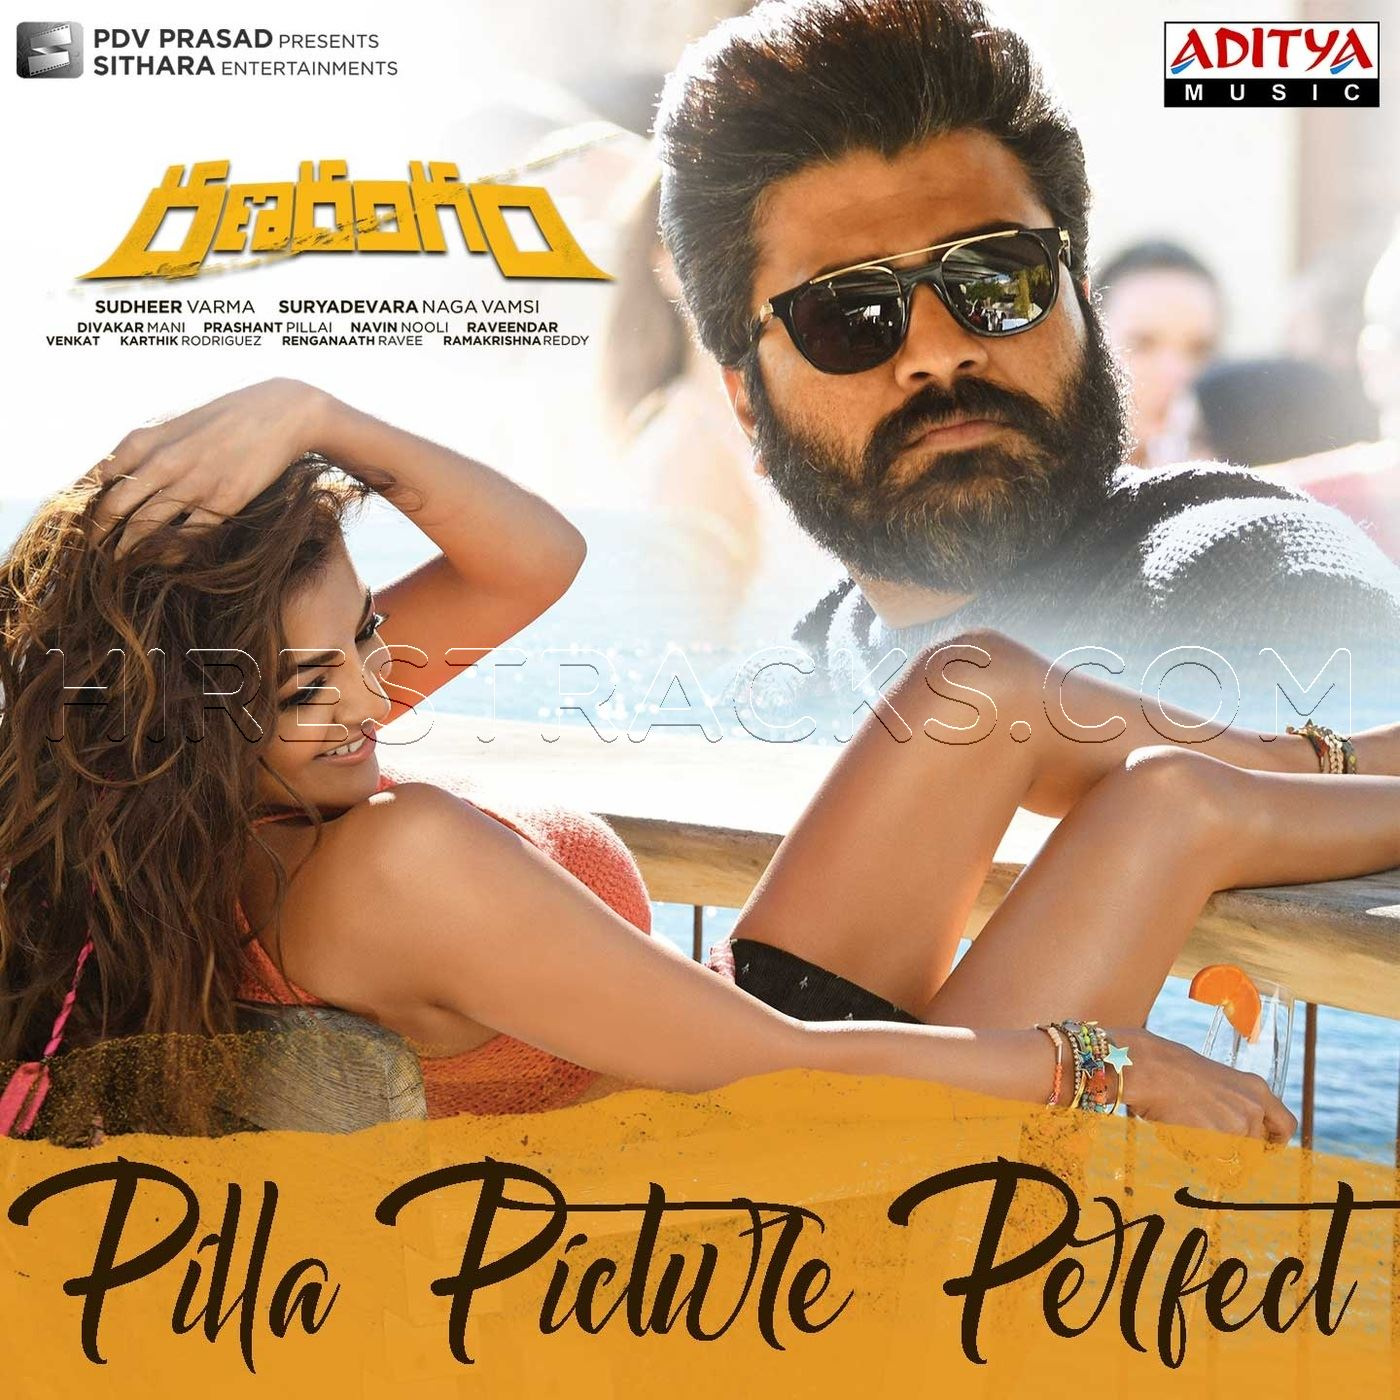 Pilla Picture Perfect (From Ranarangam) (2019) (Sunny M.R.) (Aditya Music)